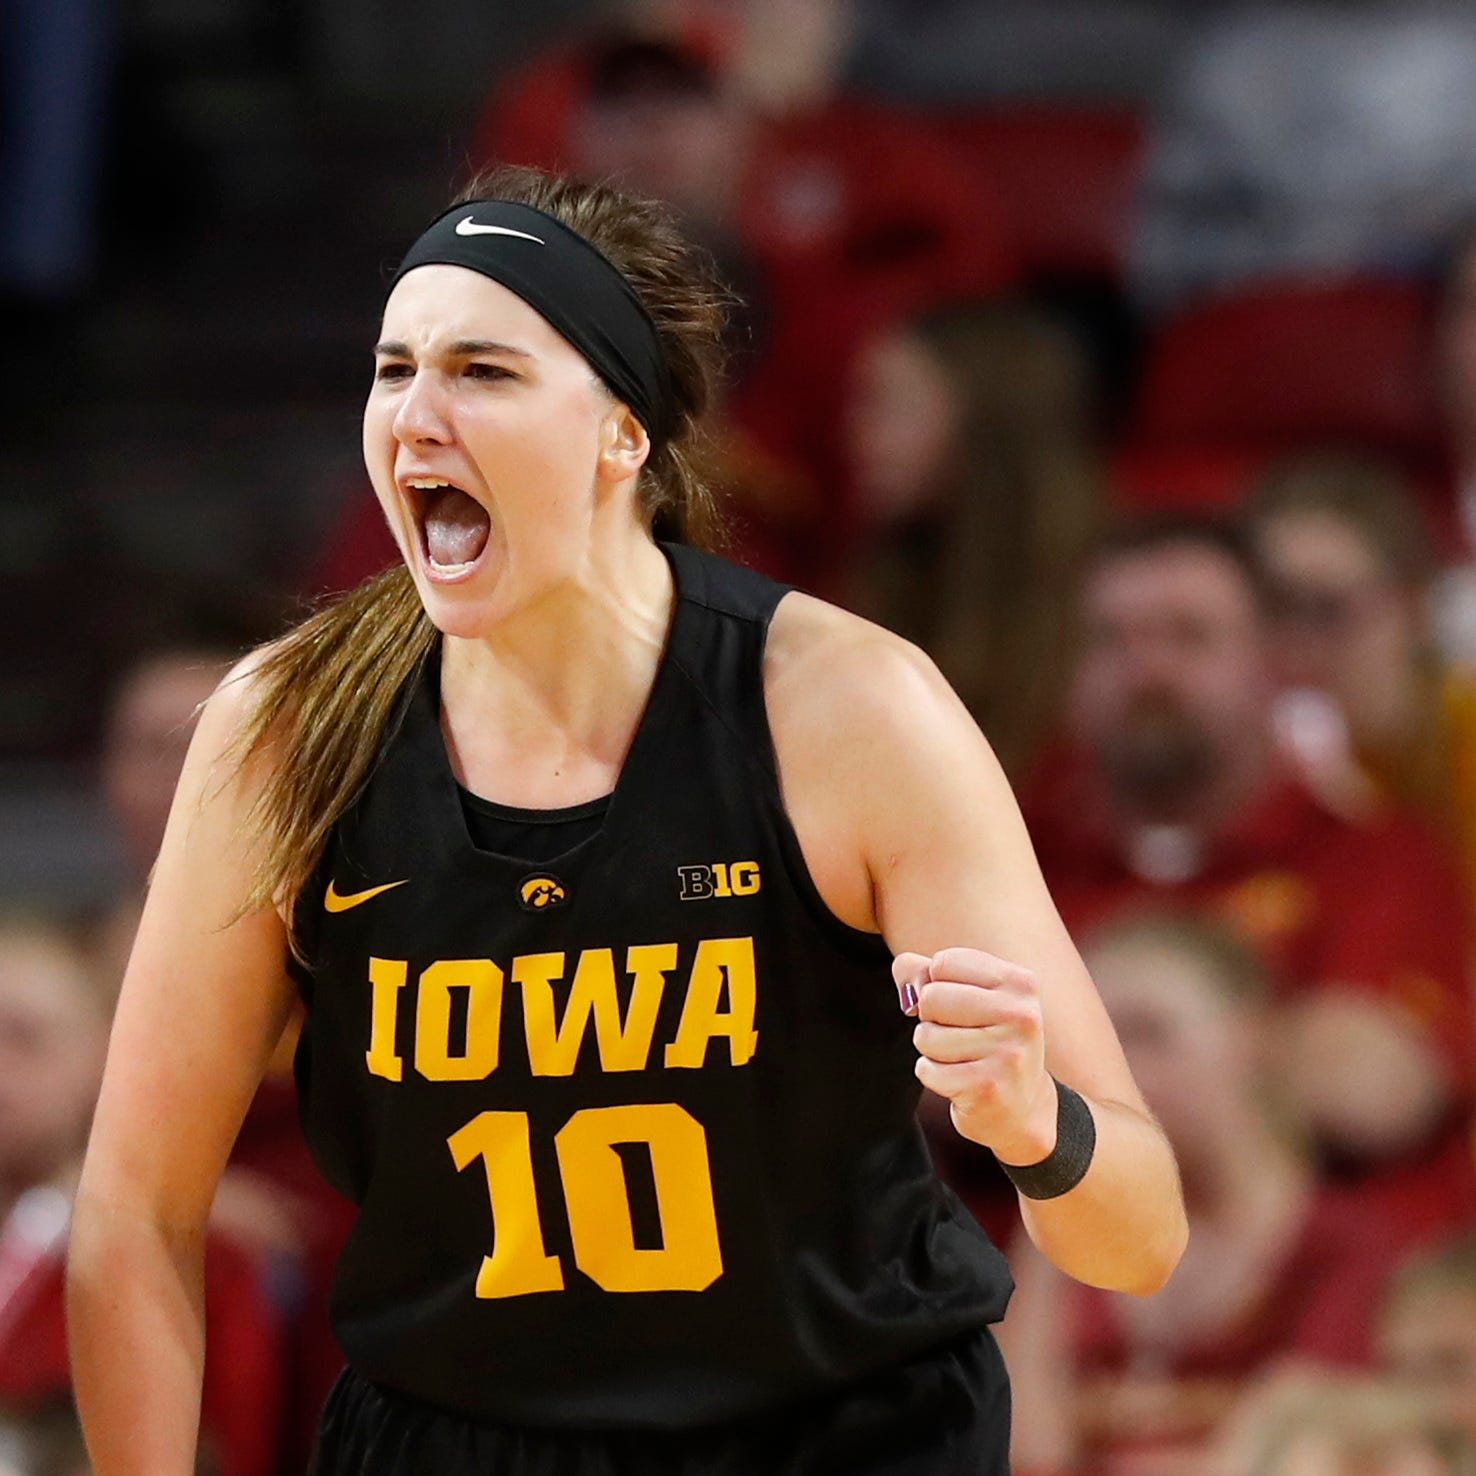 Iowa women's basketball: Megan Gustafson named preseason POY; Hawkeyes picked second in Big Ten poll